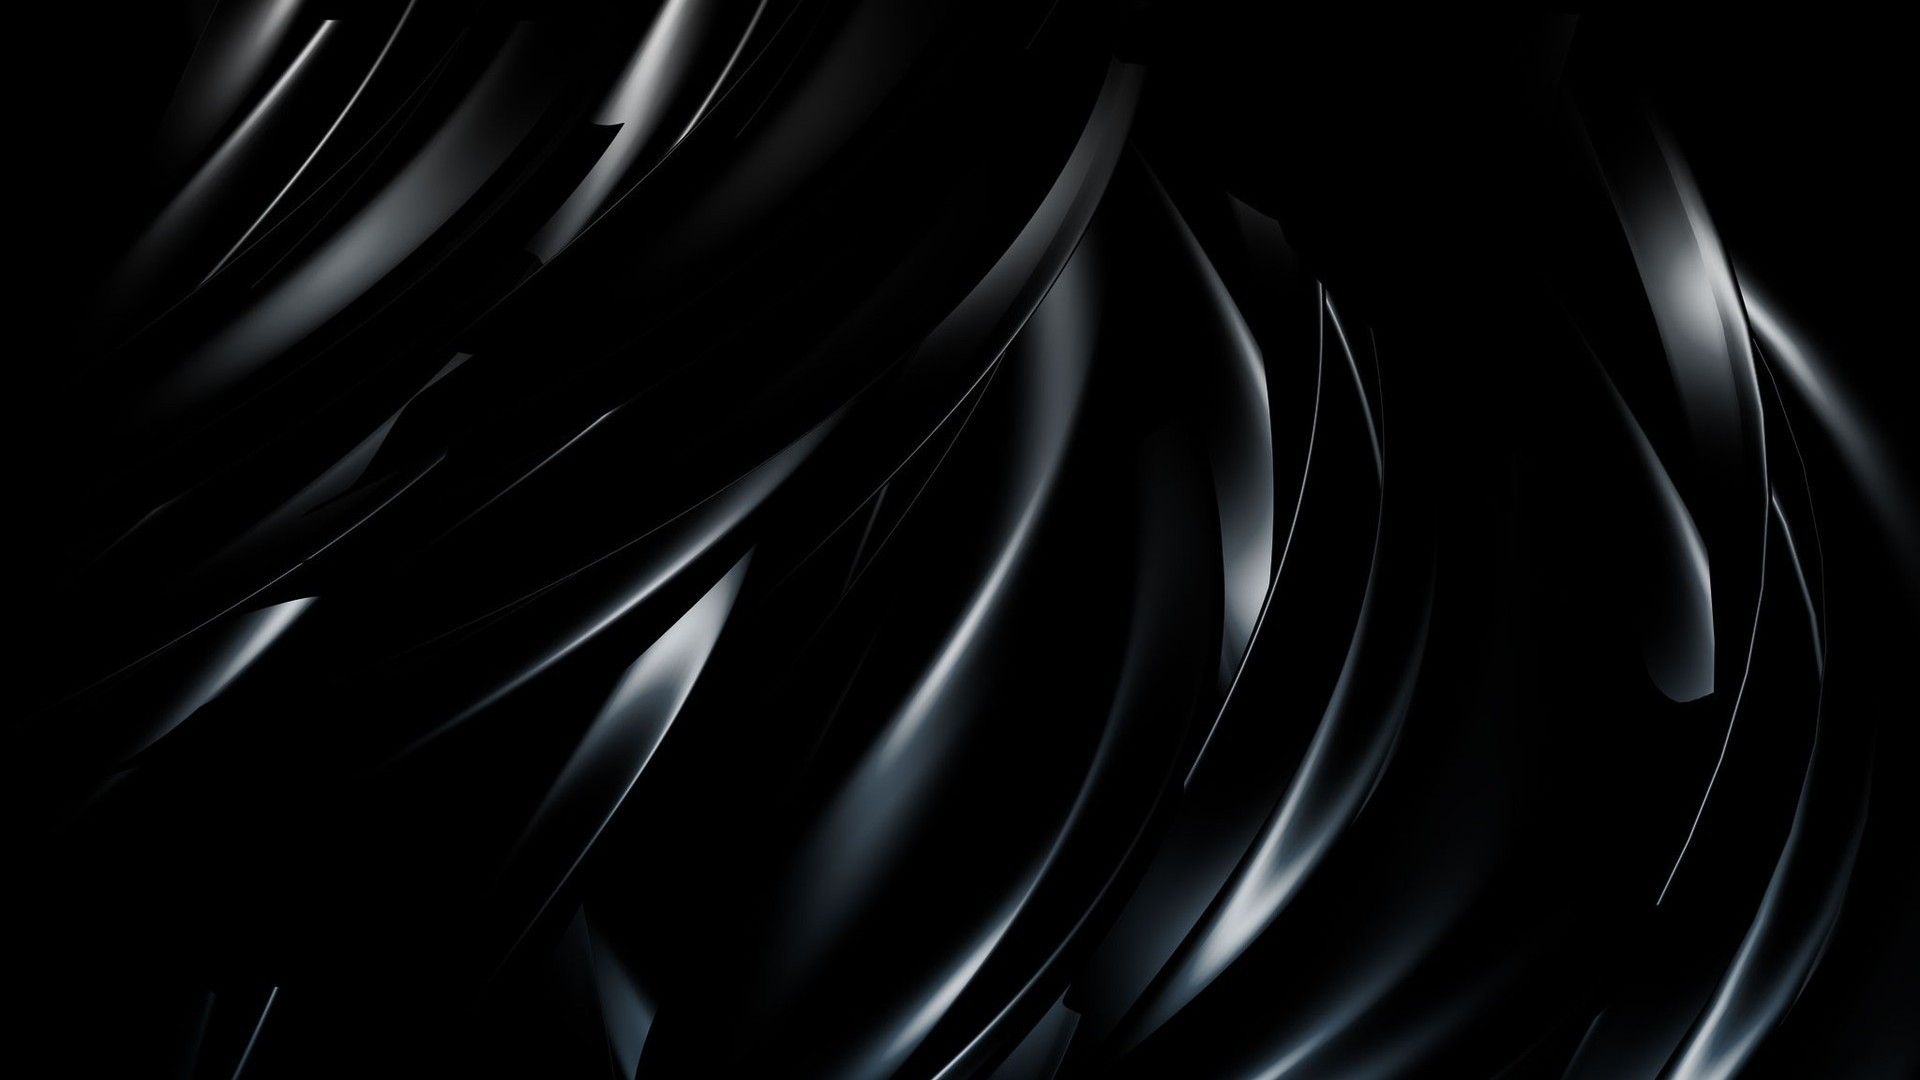 1920x1080 Collection of Black Wallpaper Abstract on HDWallpapers Wallpapers Abstract  Black Wallpapers). Dark Wallpaper ...